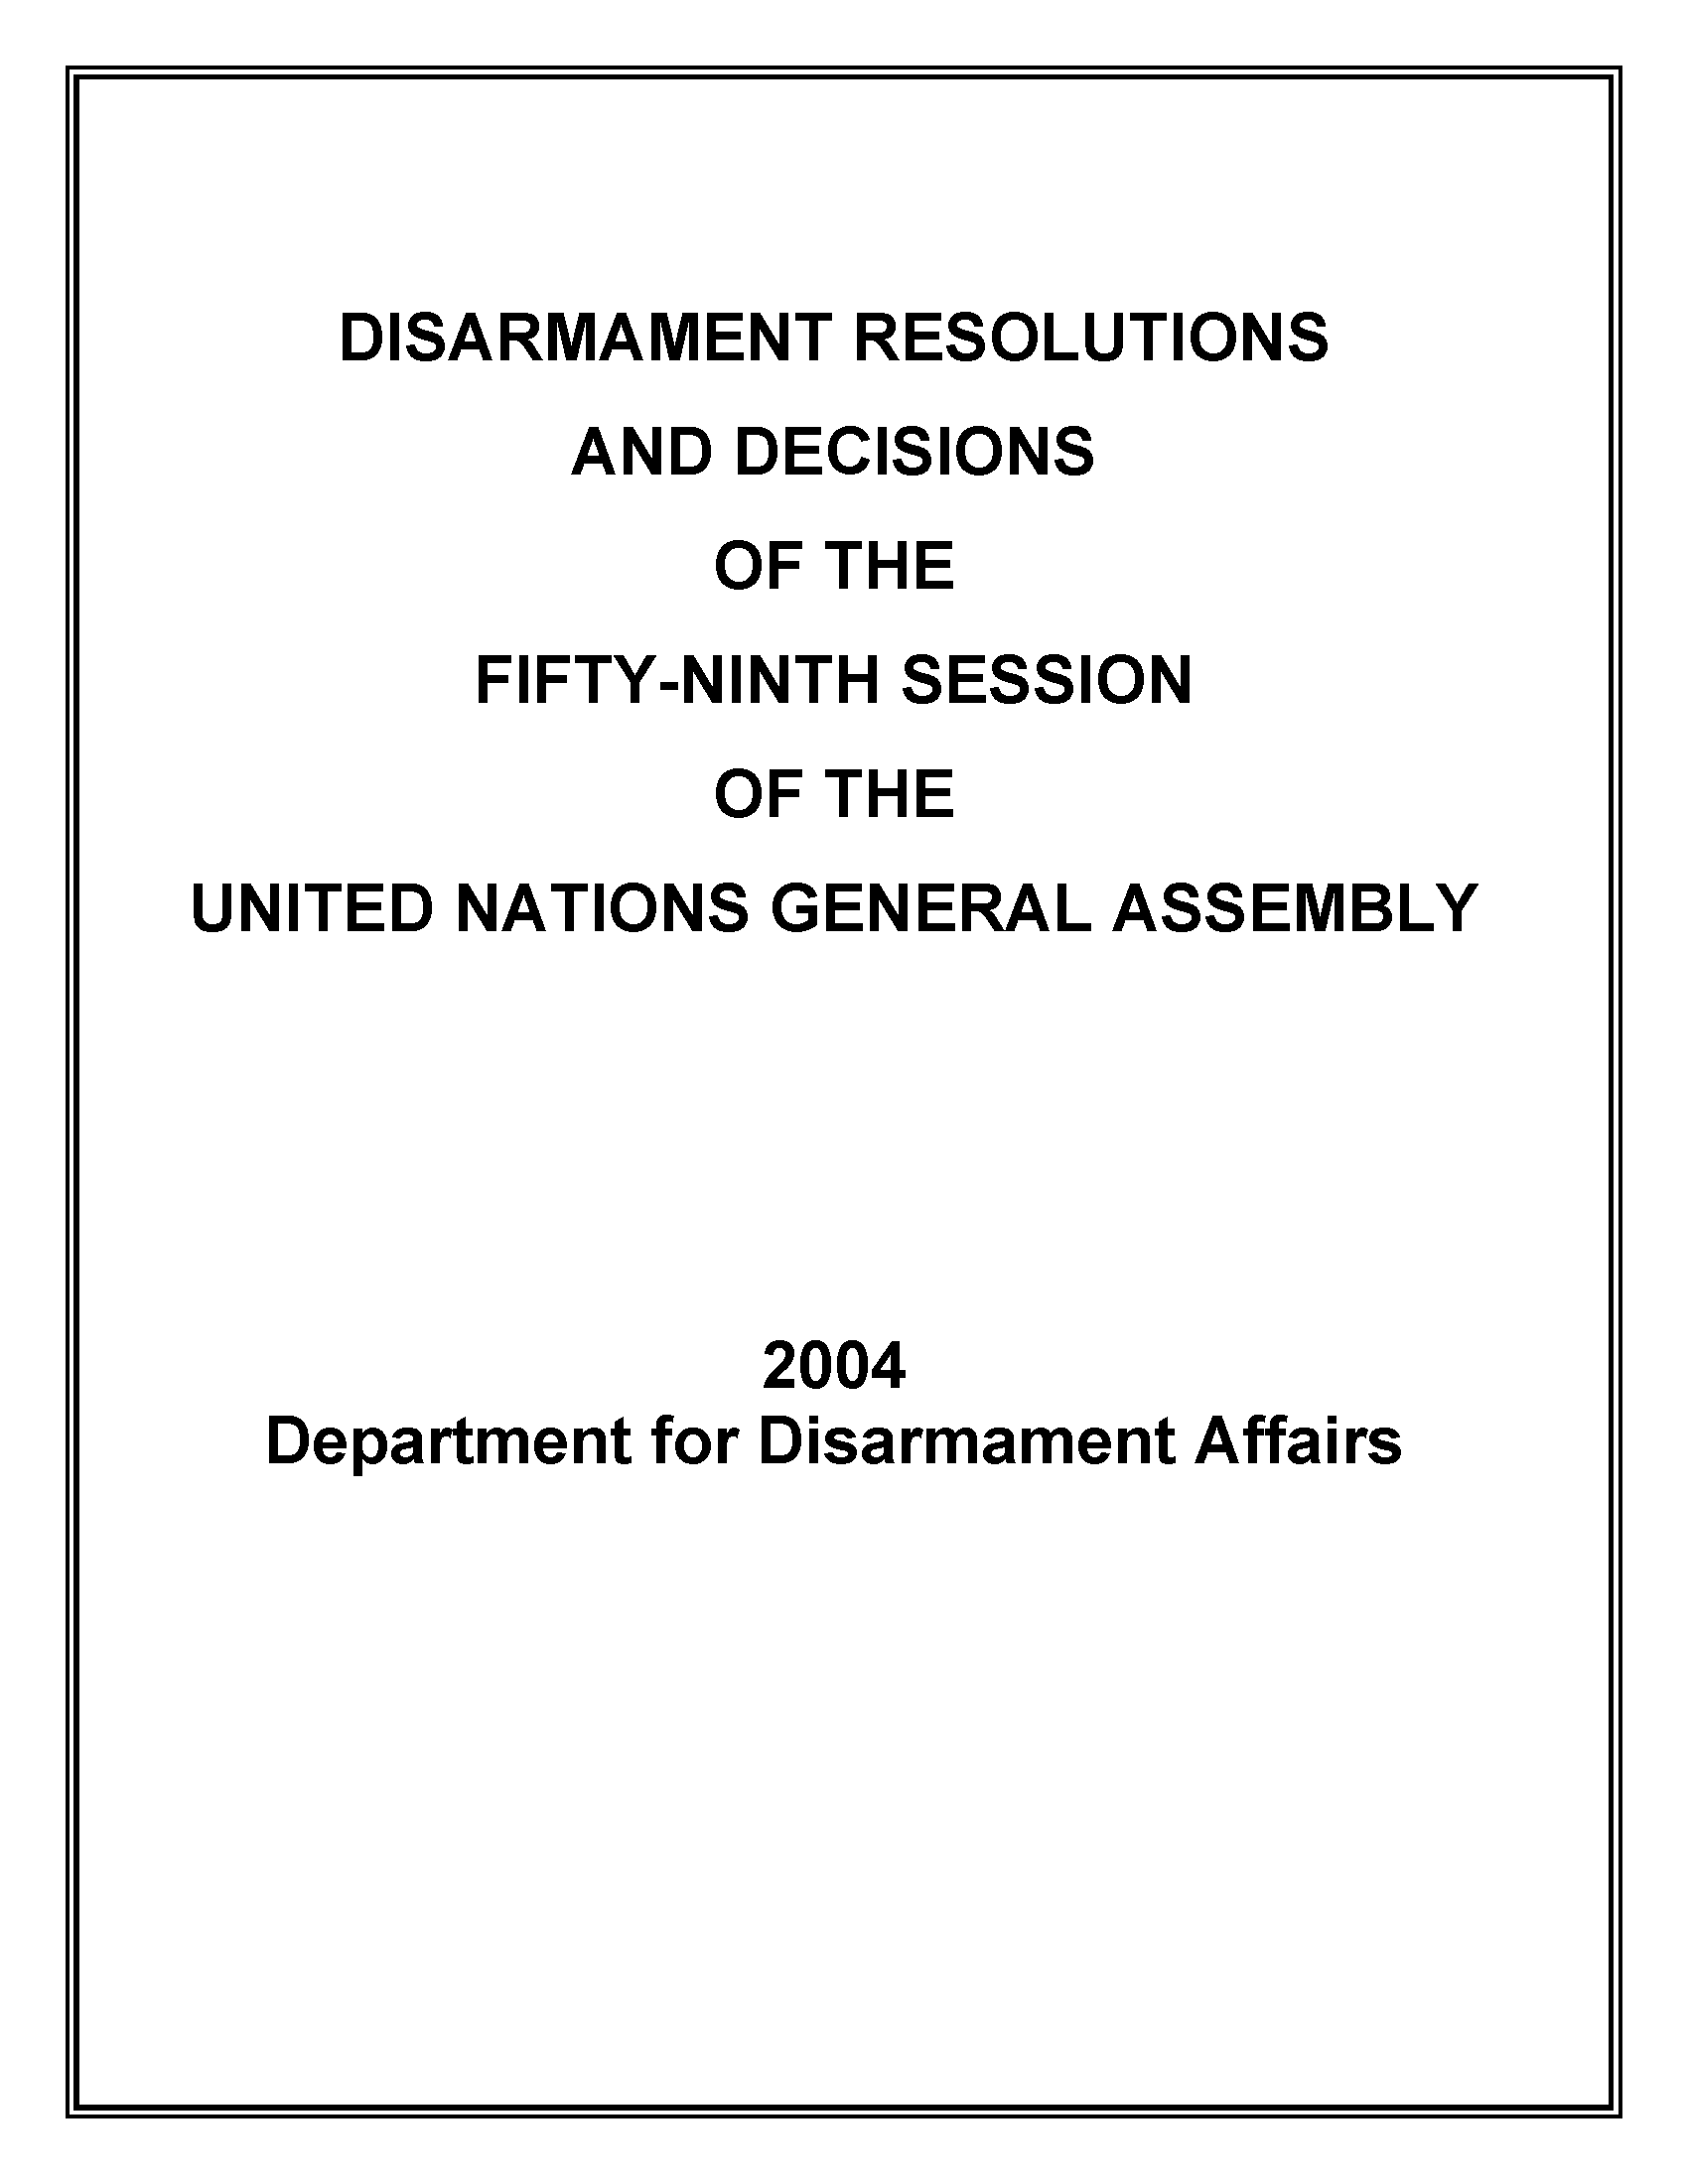 Disarmament Resolutions and Decisions of the Fifty-ninth Session of the United Nations General Assembly, 2004